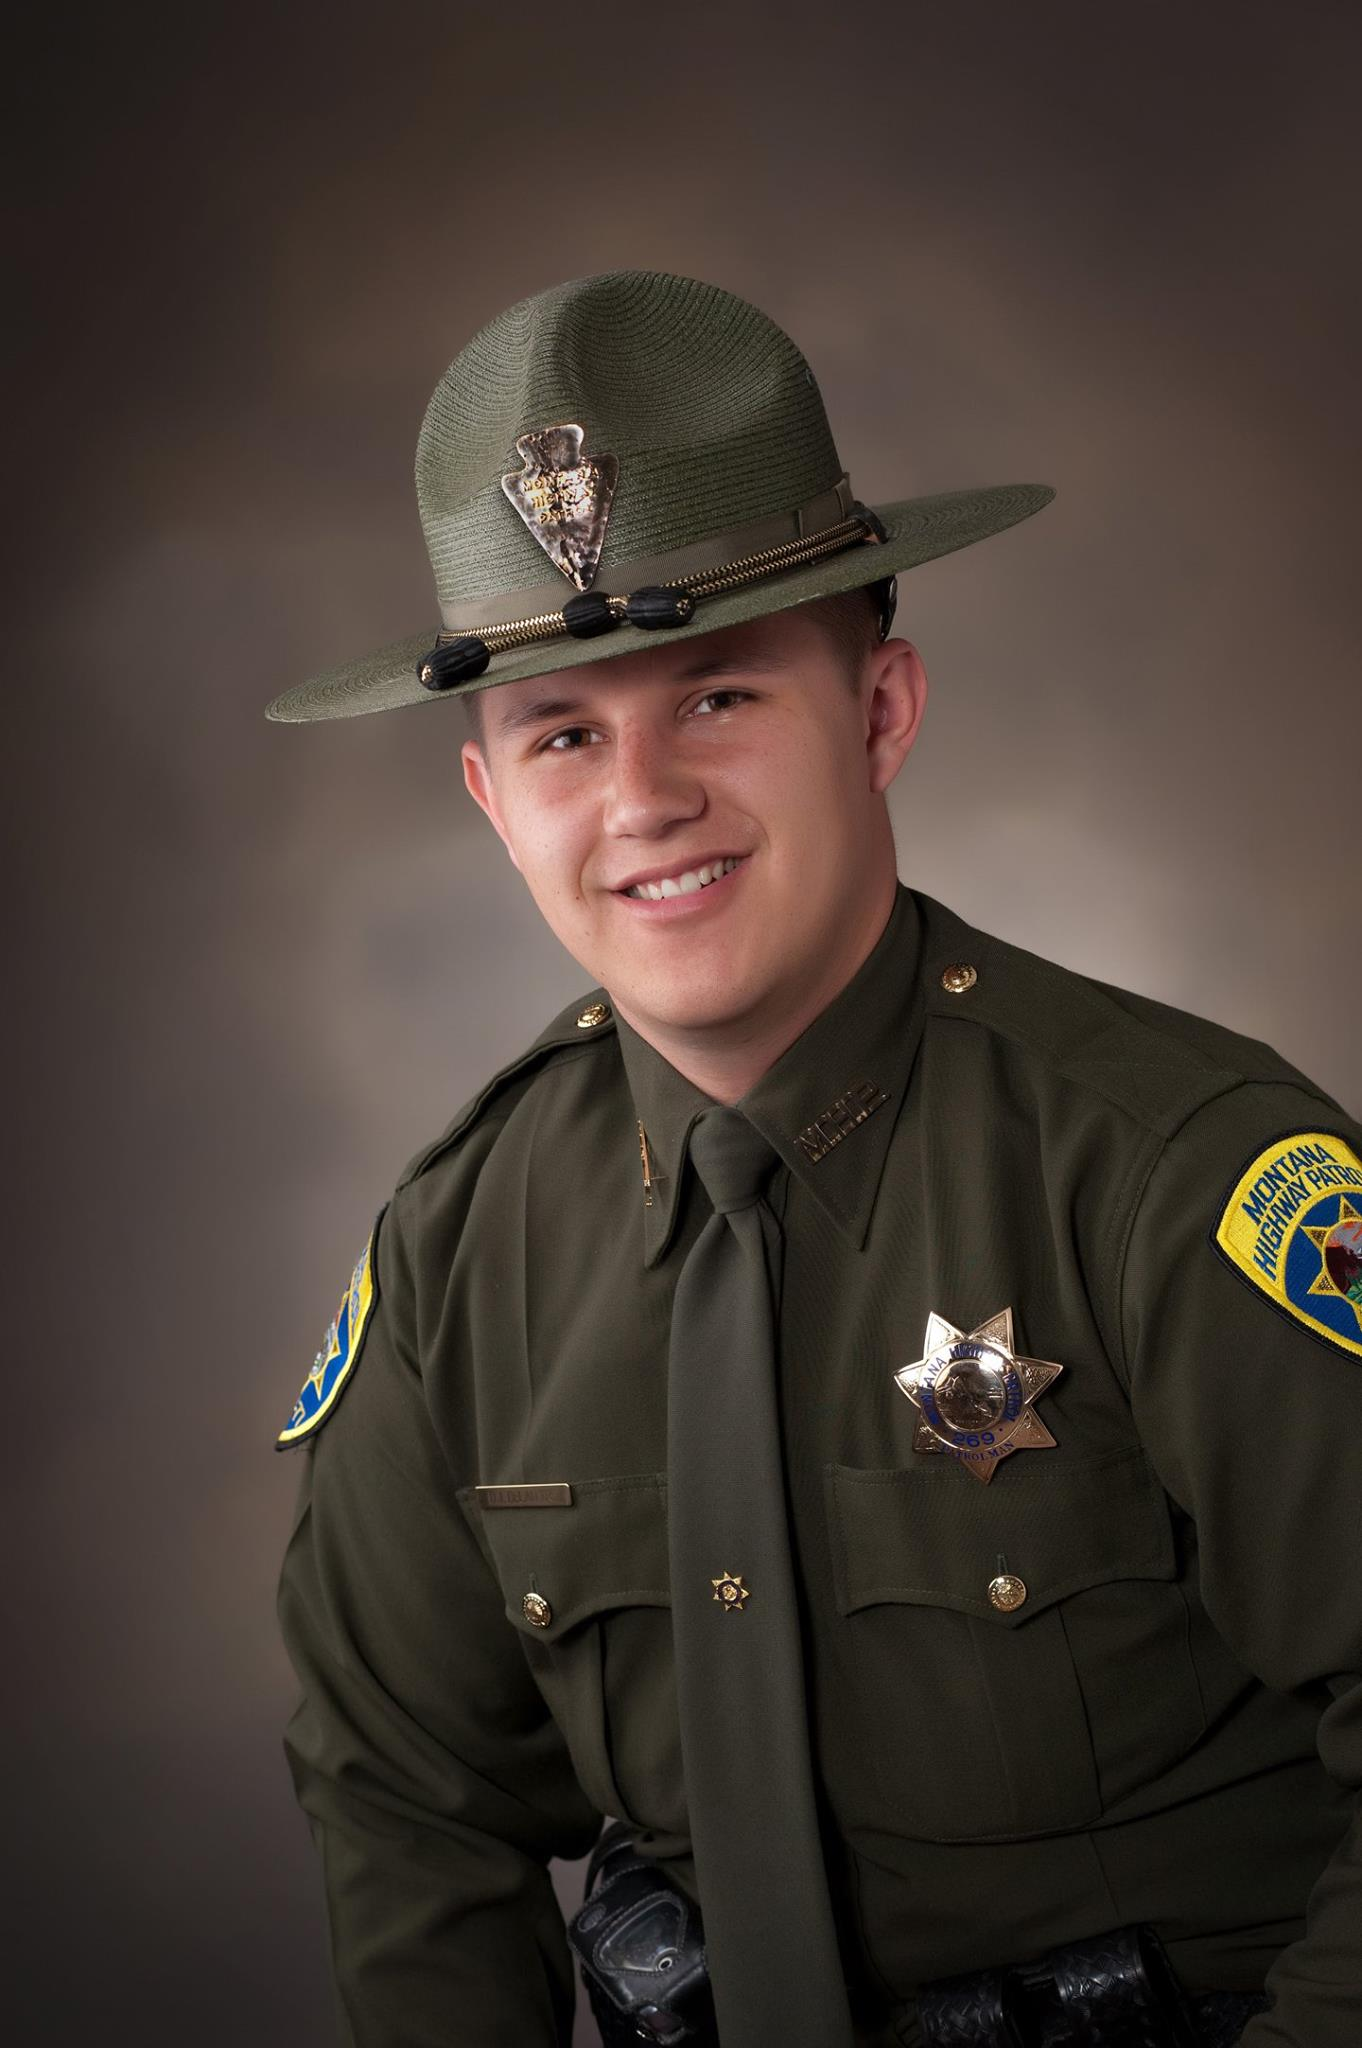 Trooper David James DeLaittre | Montana Highway Patrol, Montana